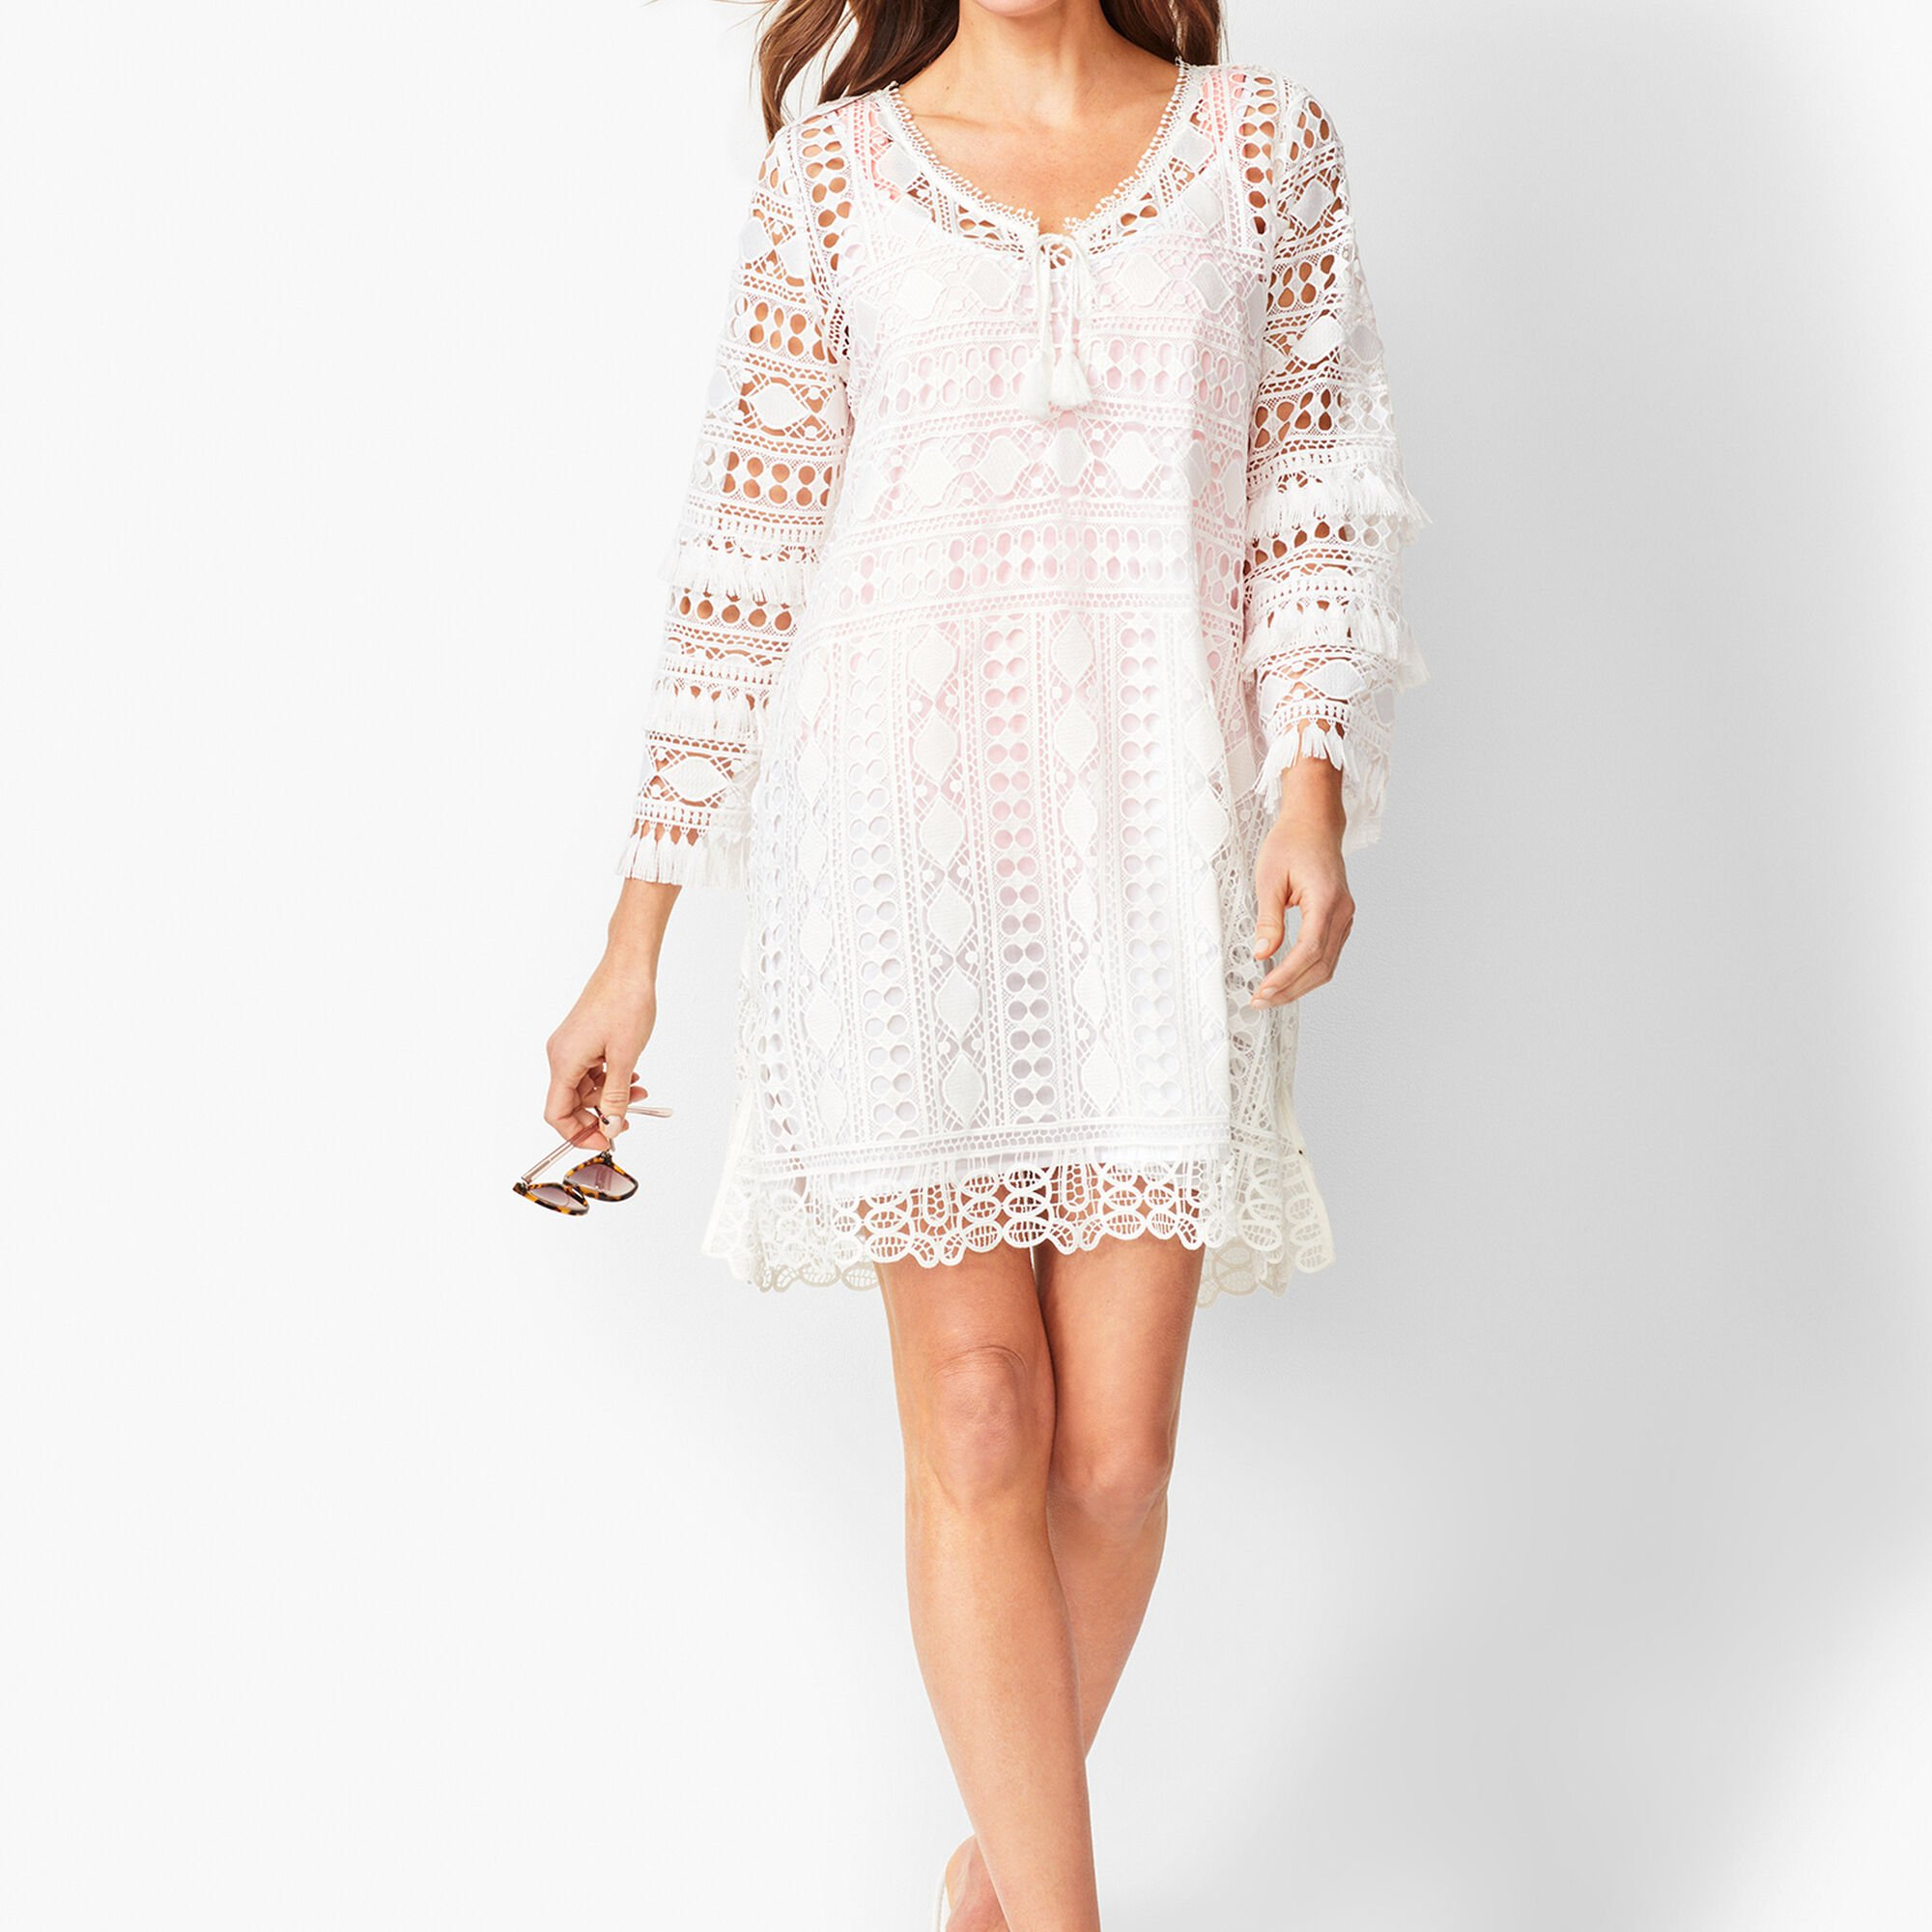 a2c0d7dce97 Images. Bell-Sleeve Embroidered Lace Cover-up